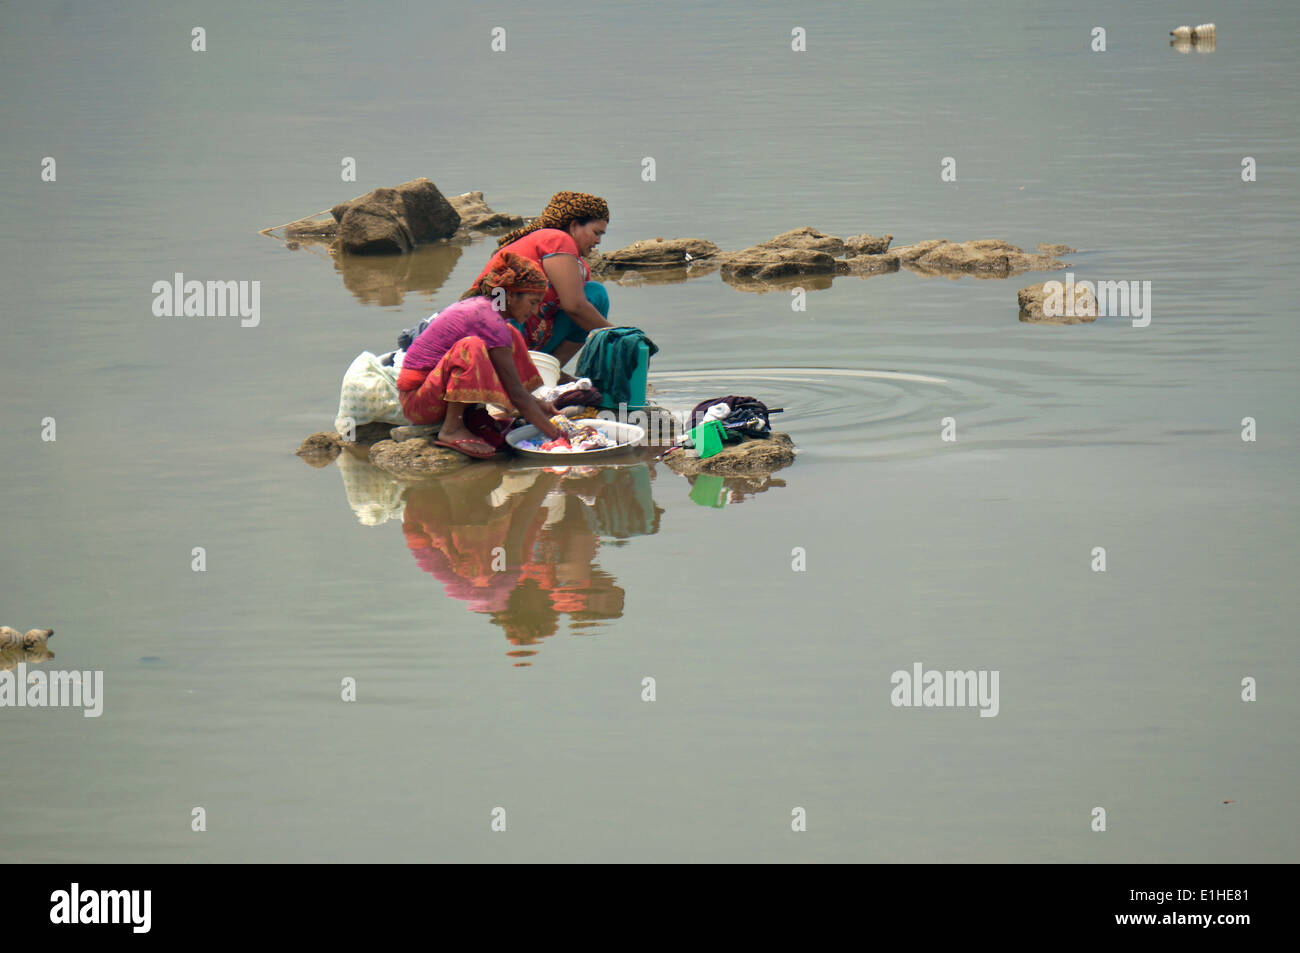 Two women are doing laundry in the lake - Stock Image